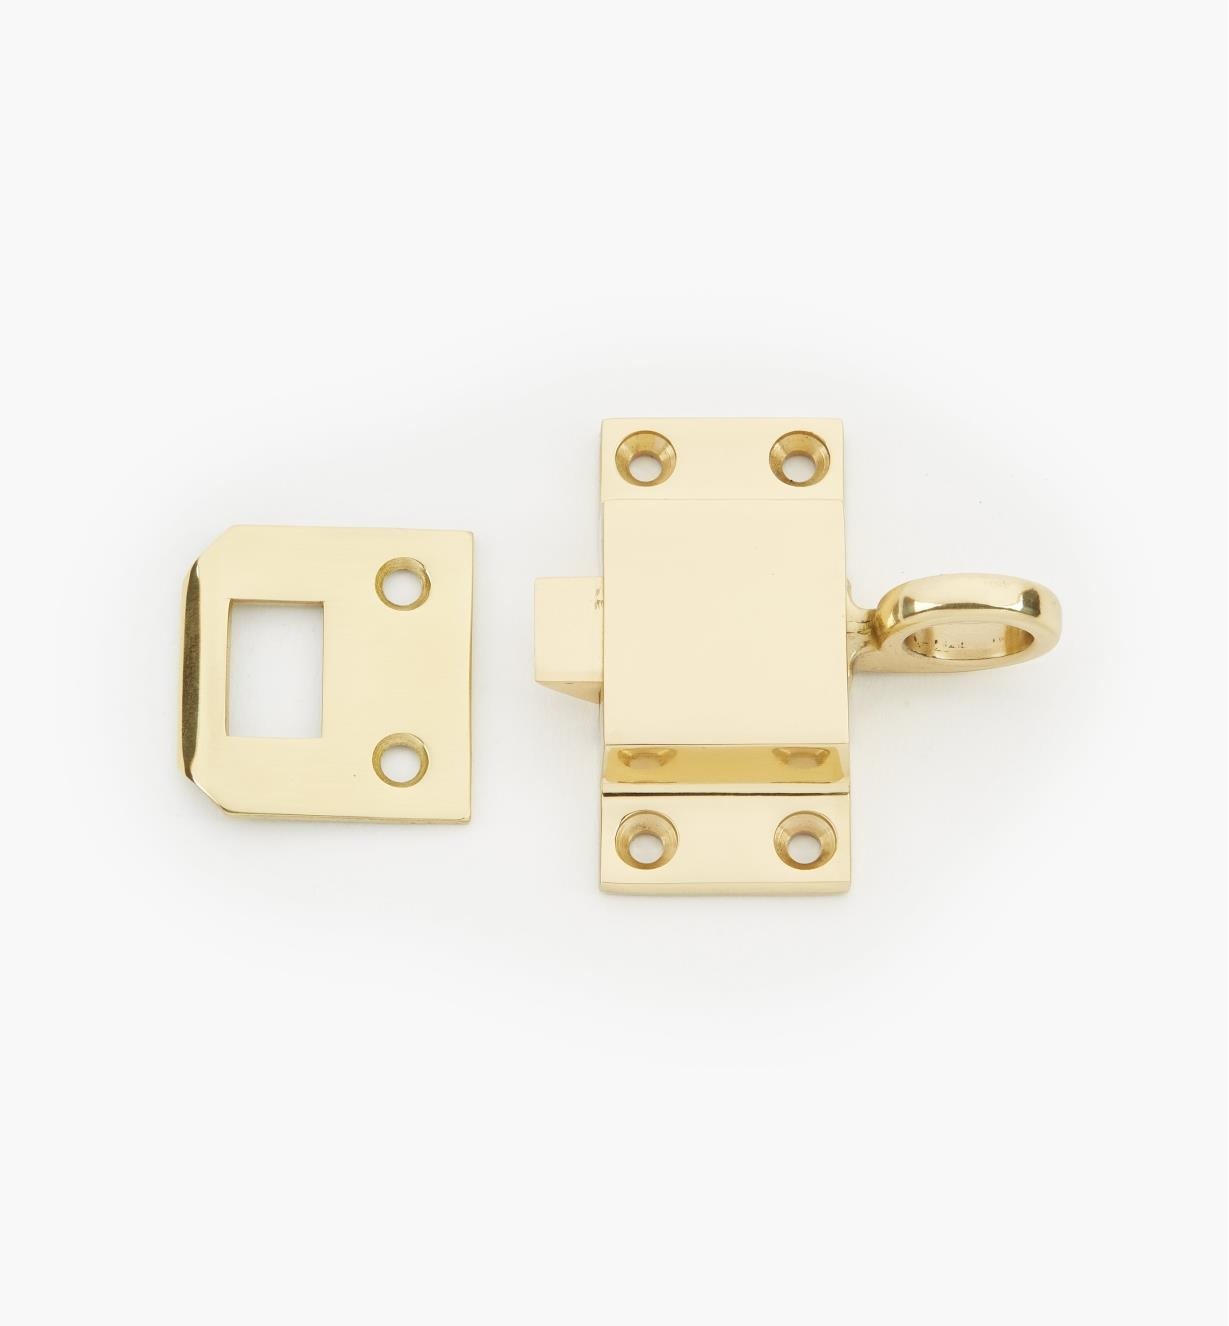 00L0501 - Polished Brass Transom Latch